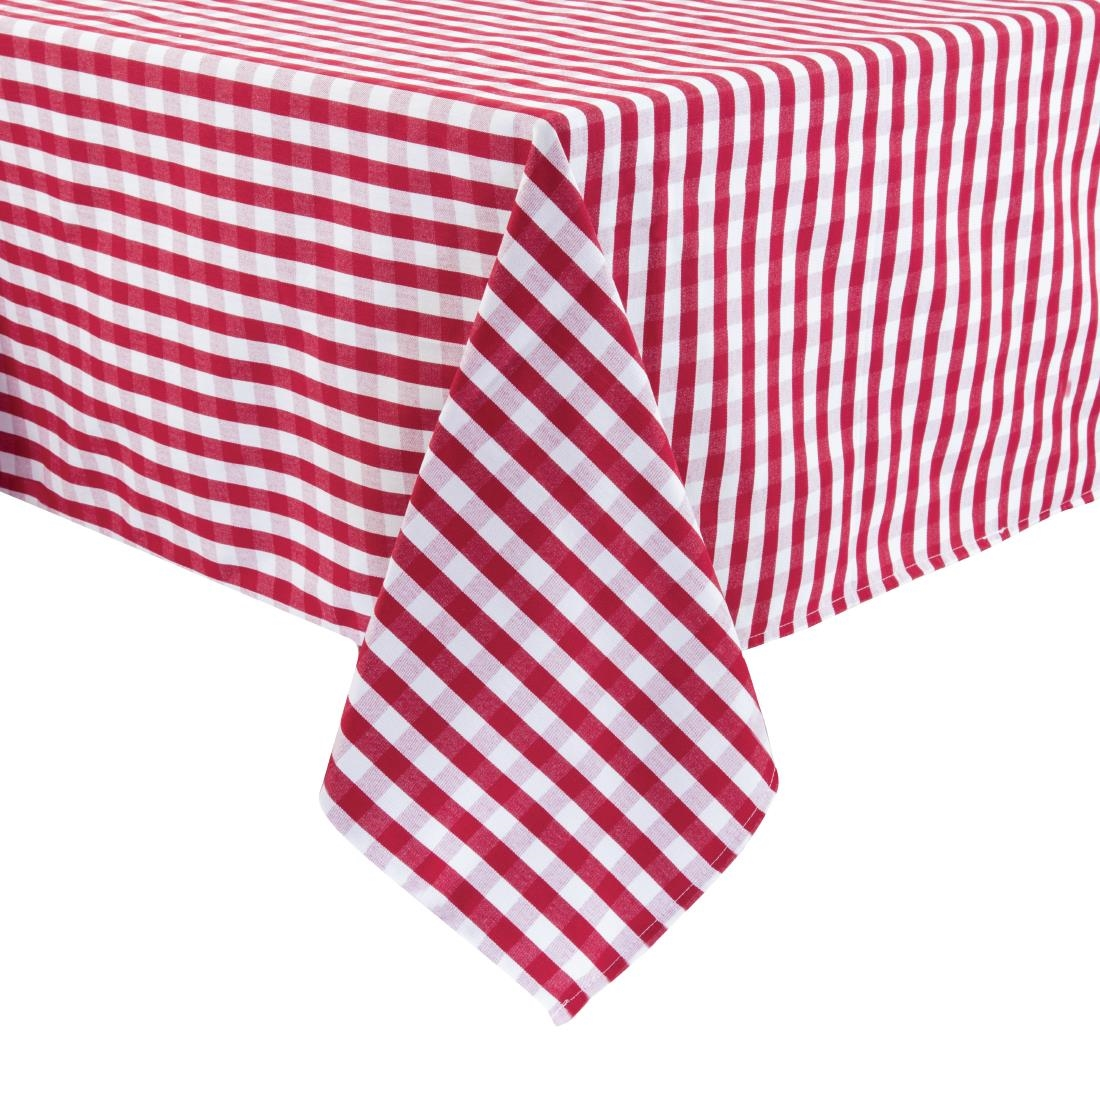 Image of Gingham Tablecloth Red 890 x 890mm